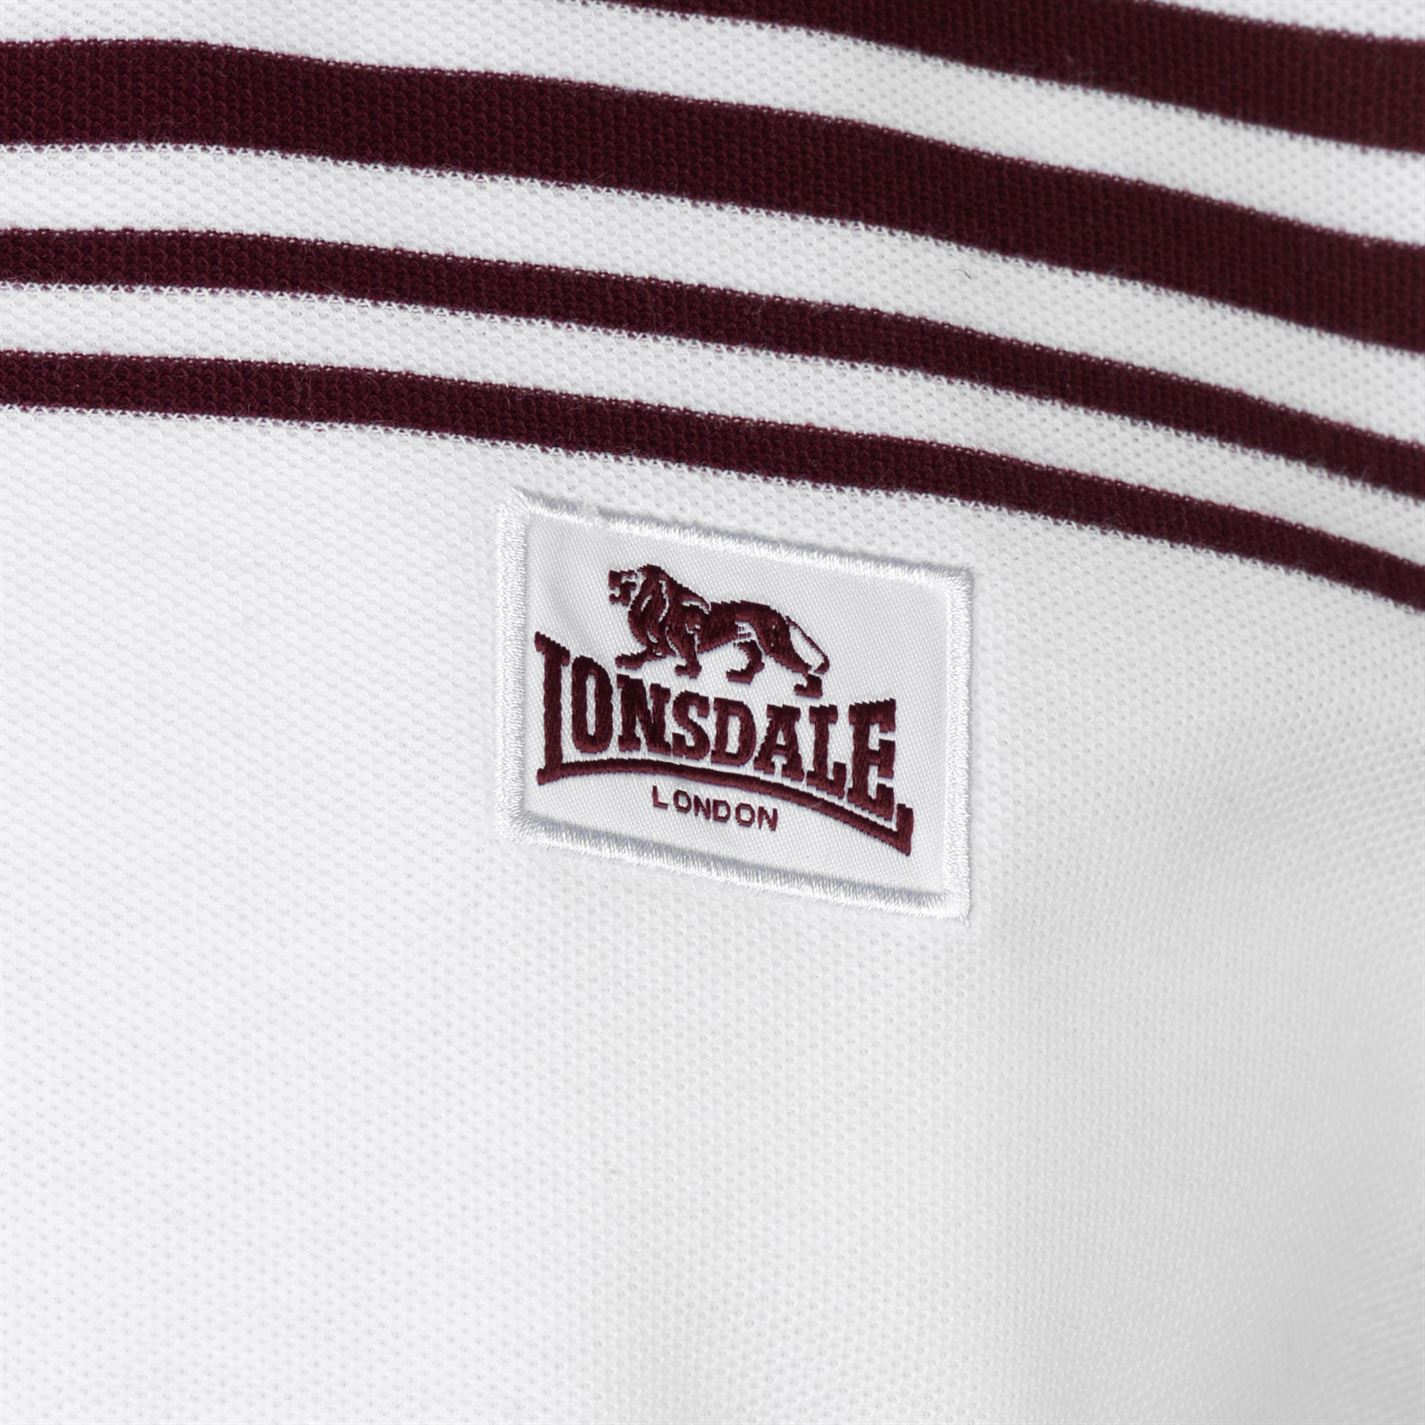 Lonsdale-Mens-Stripe-Polo-Shirt-Classic-Fit-Tee-Top-Short-Sleeve-Button-Placket thumbnail 18